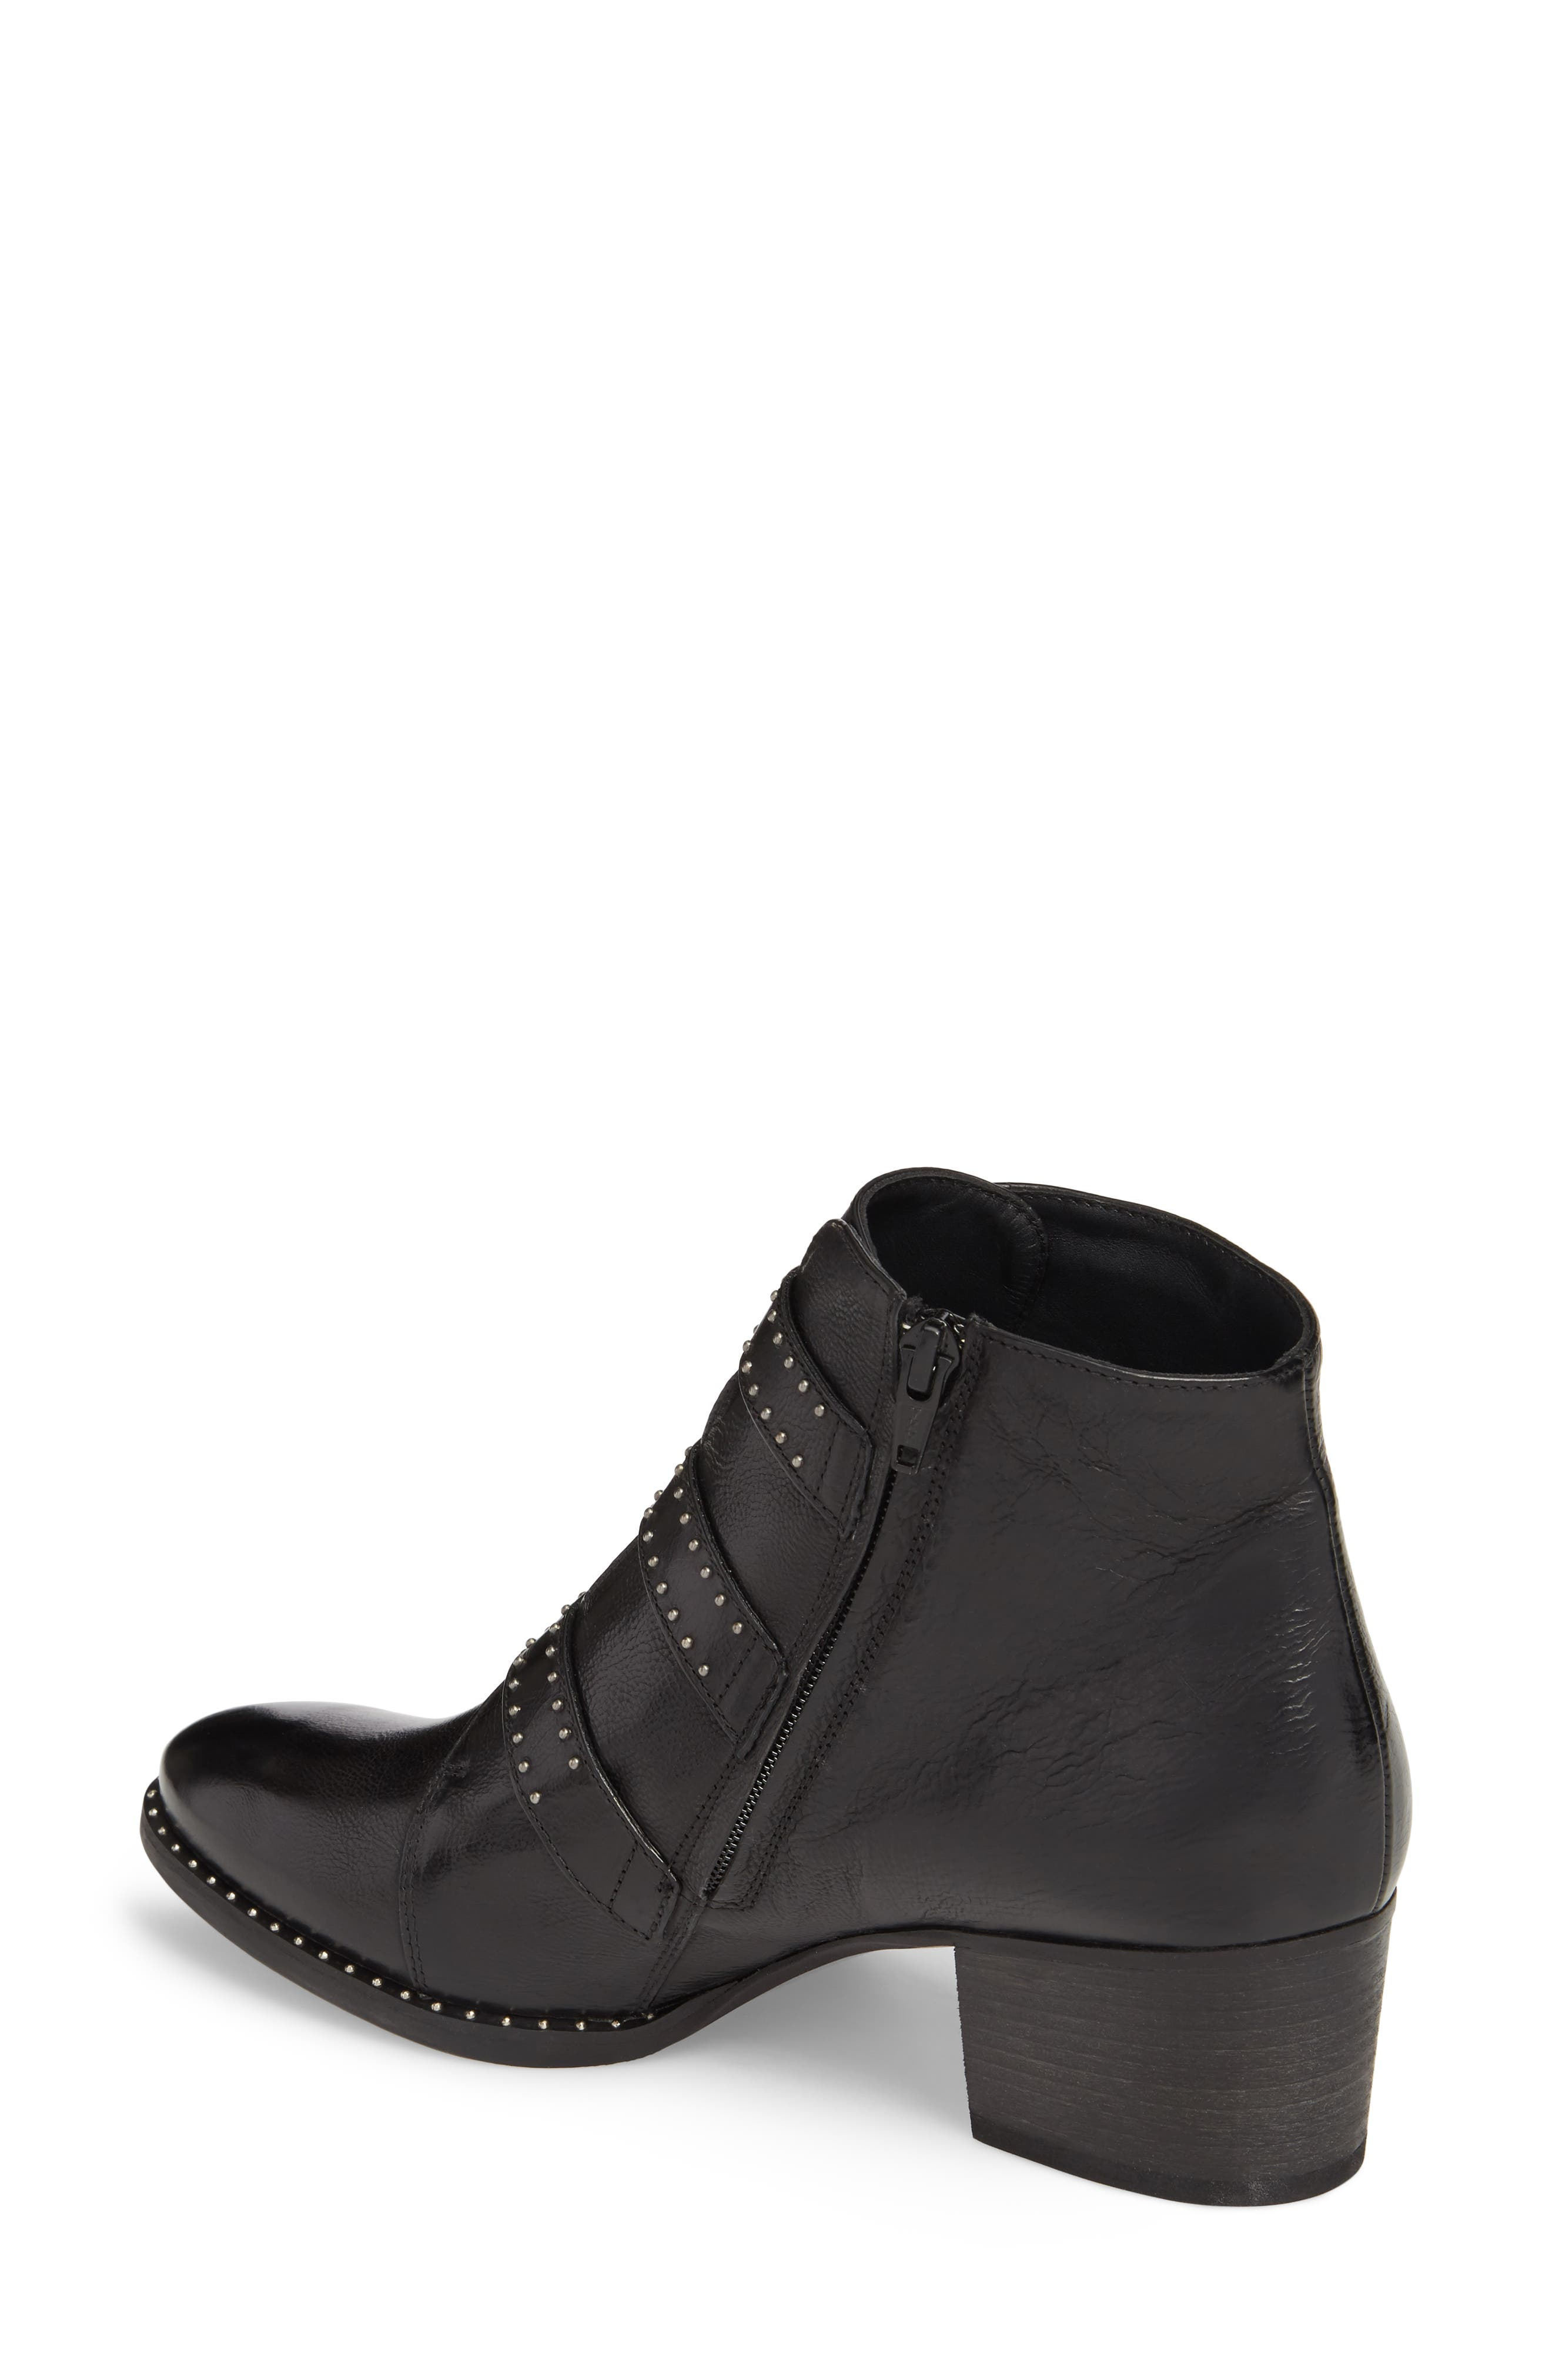 Soho Bootie,                             Alternate thumbnail 2, color,                             BLACK LEATHER